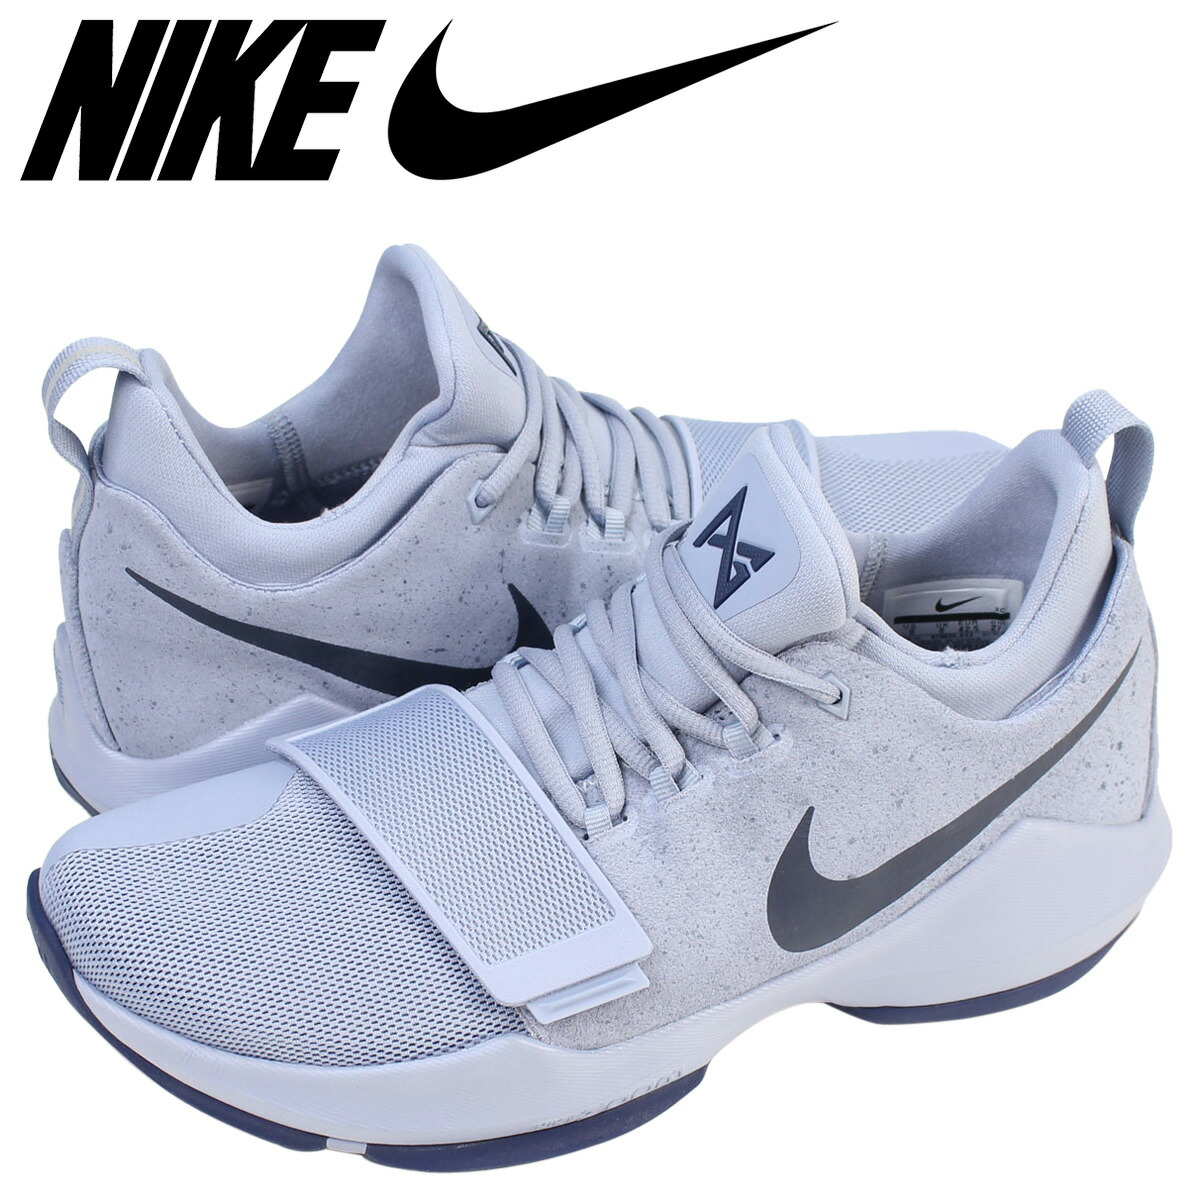 NIKE Nike PG1 sneakers PG 1 EP 878,628 044 men's shoes gray